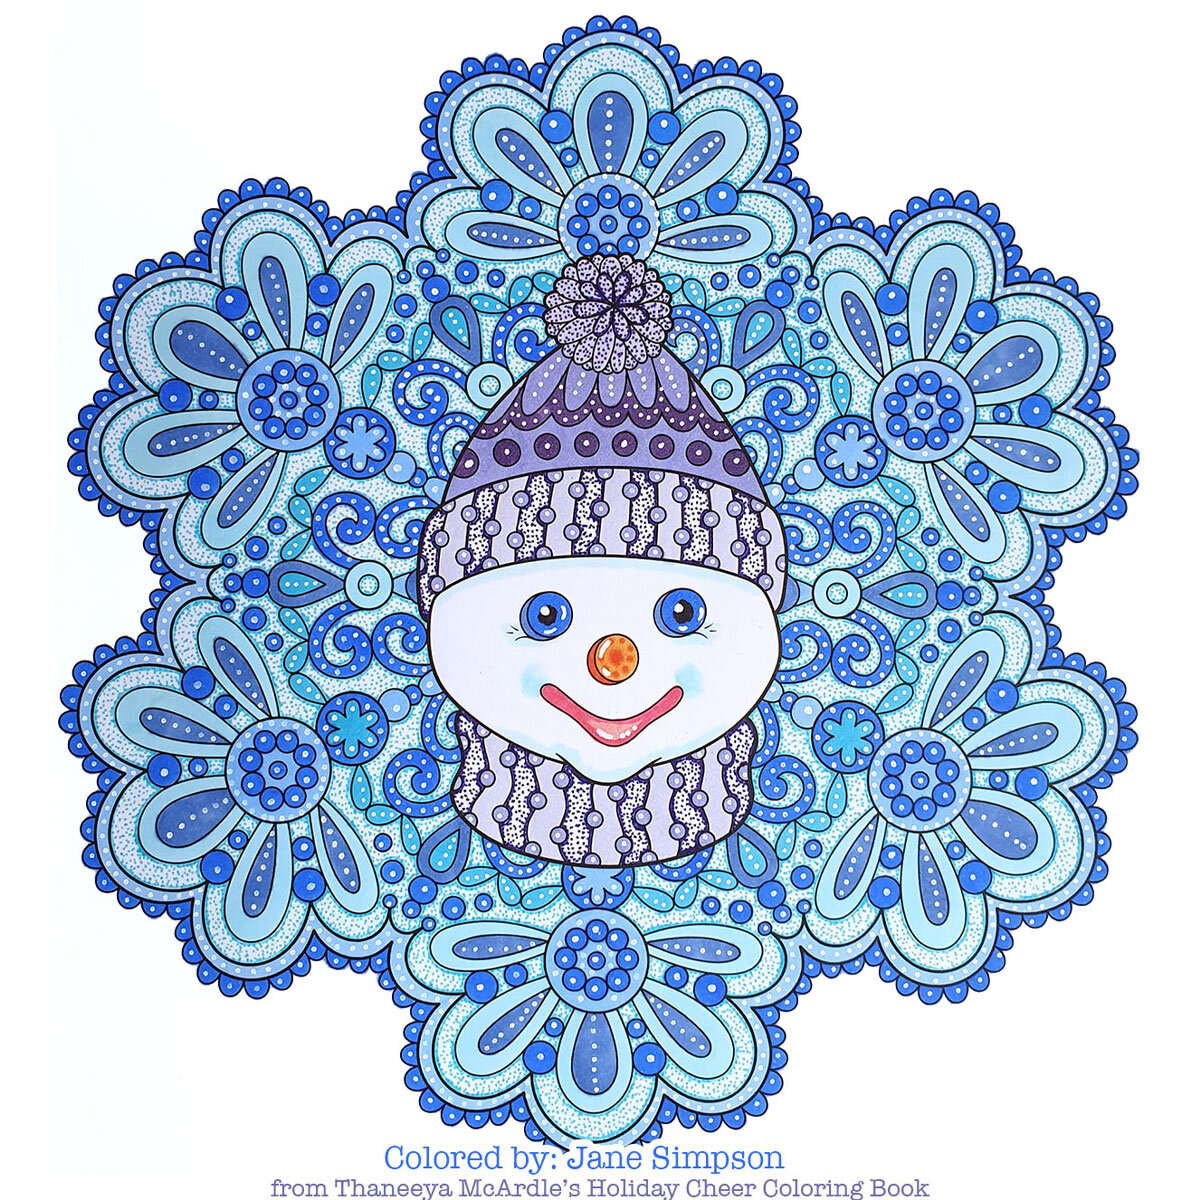 - New Christmas Coloring Galleries From Thaneeya McArdle's Christmas Coloring  Books — Thaneeya.com